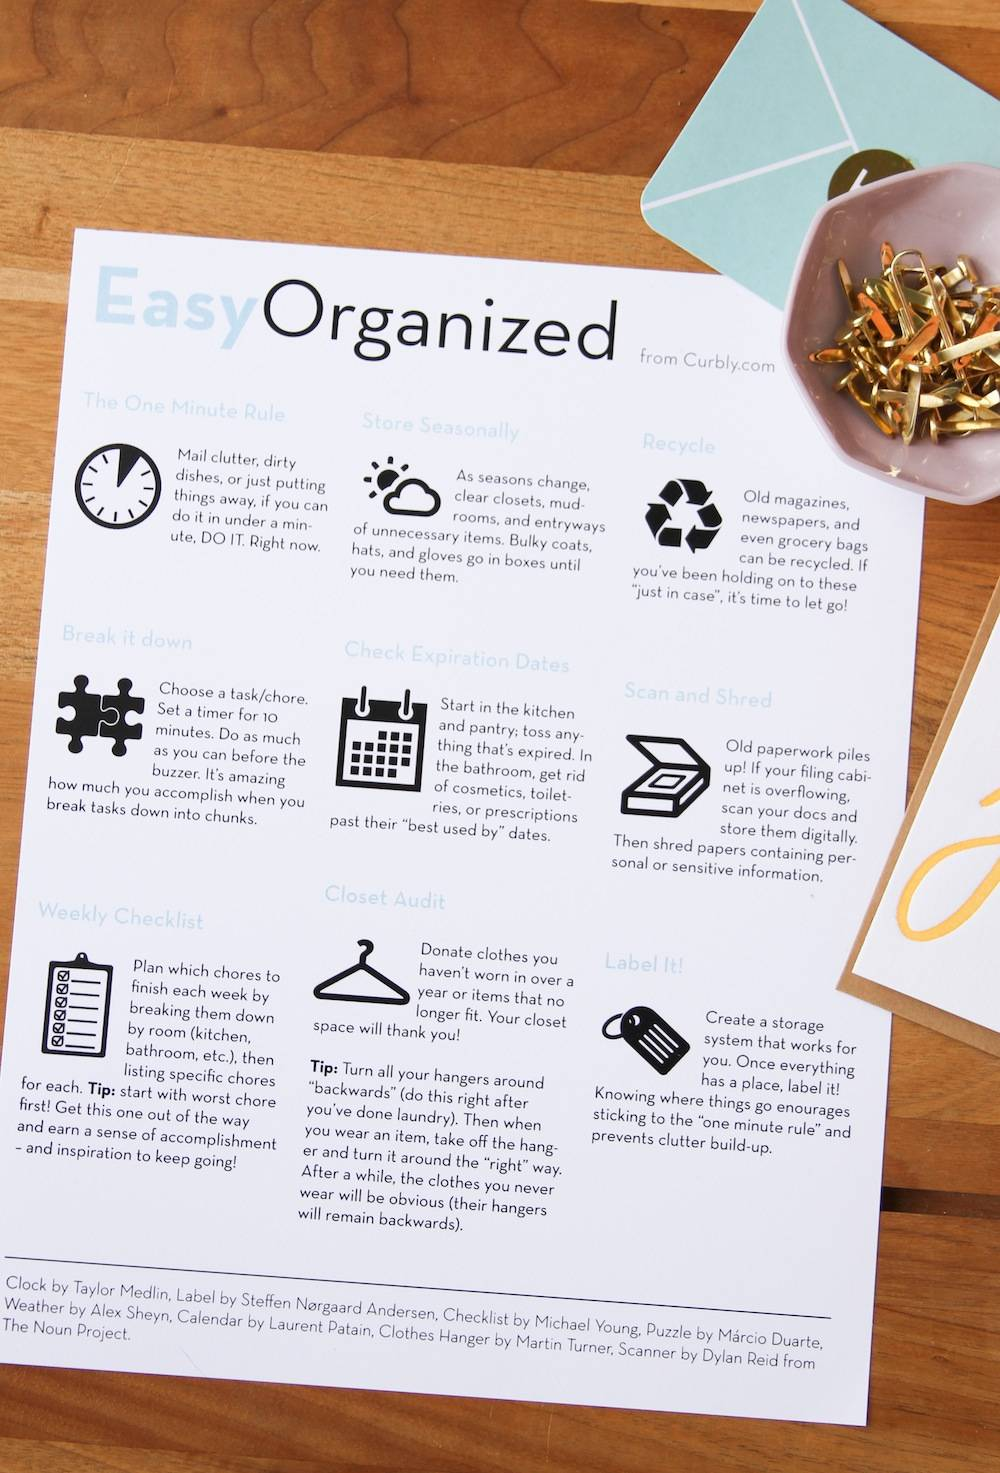 Download our FREE Home Organization Cheat Sheet!